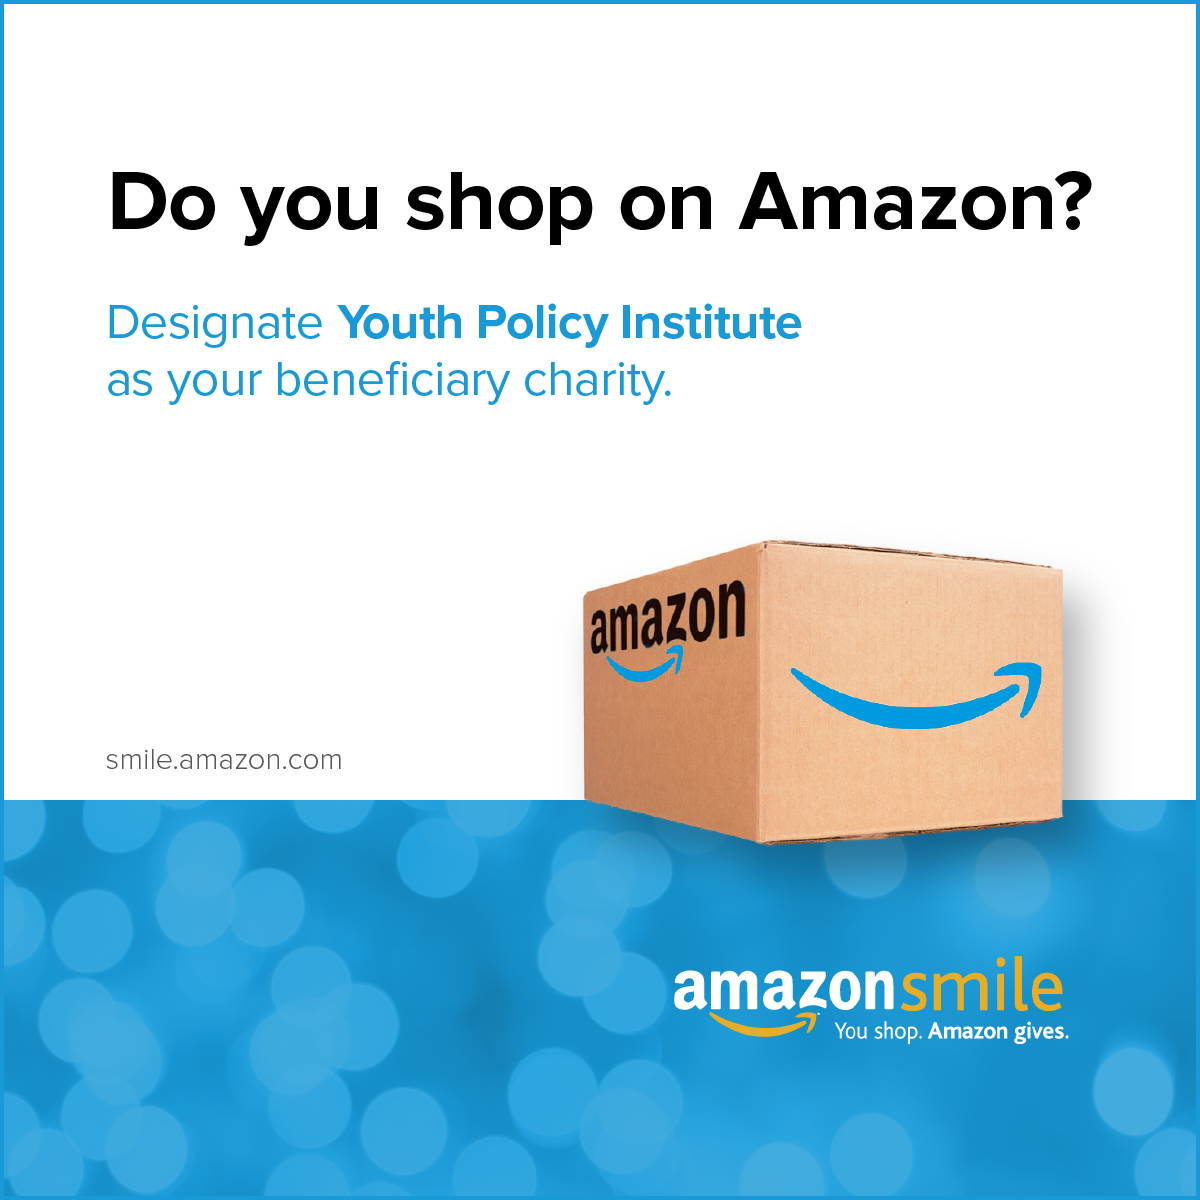 amazon_smile_ad_(1).png